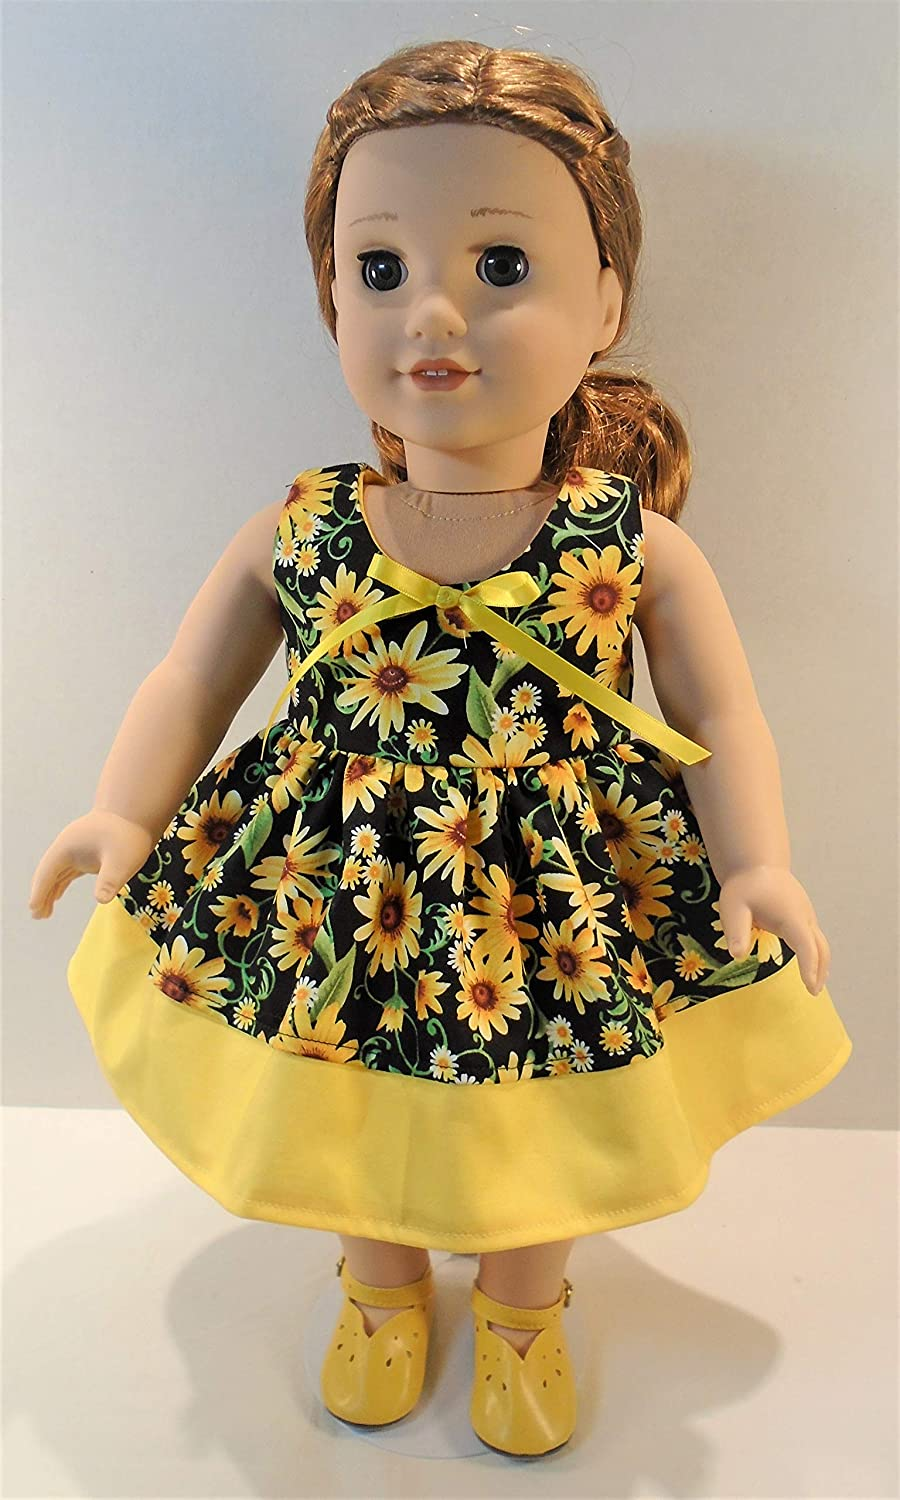 Sunflowers on Black Sun Dress handmade by Jane Ellen to fit 18 inch dolls 18 Inch Doll Clothes